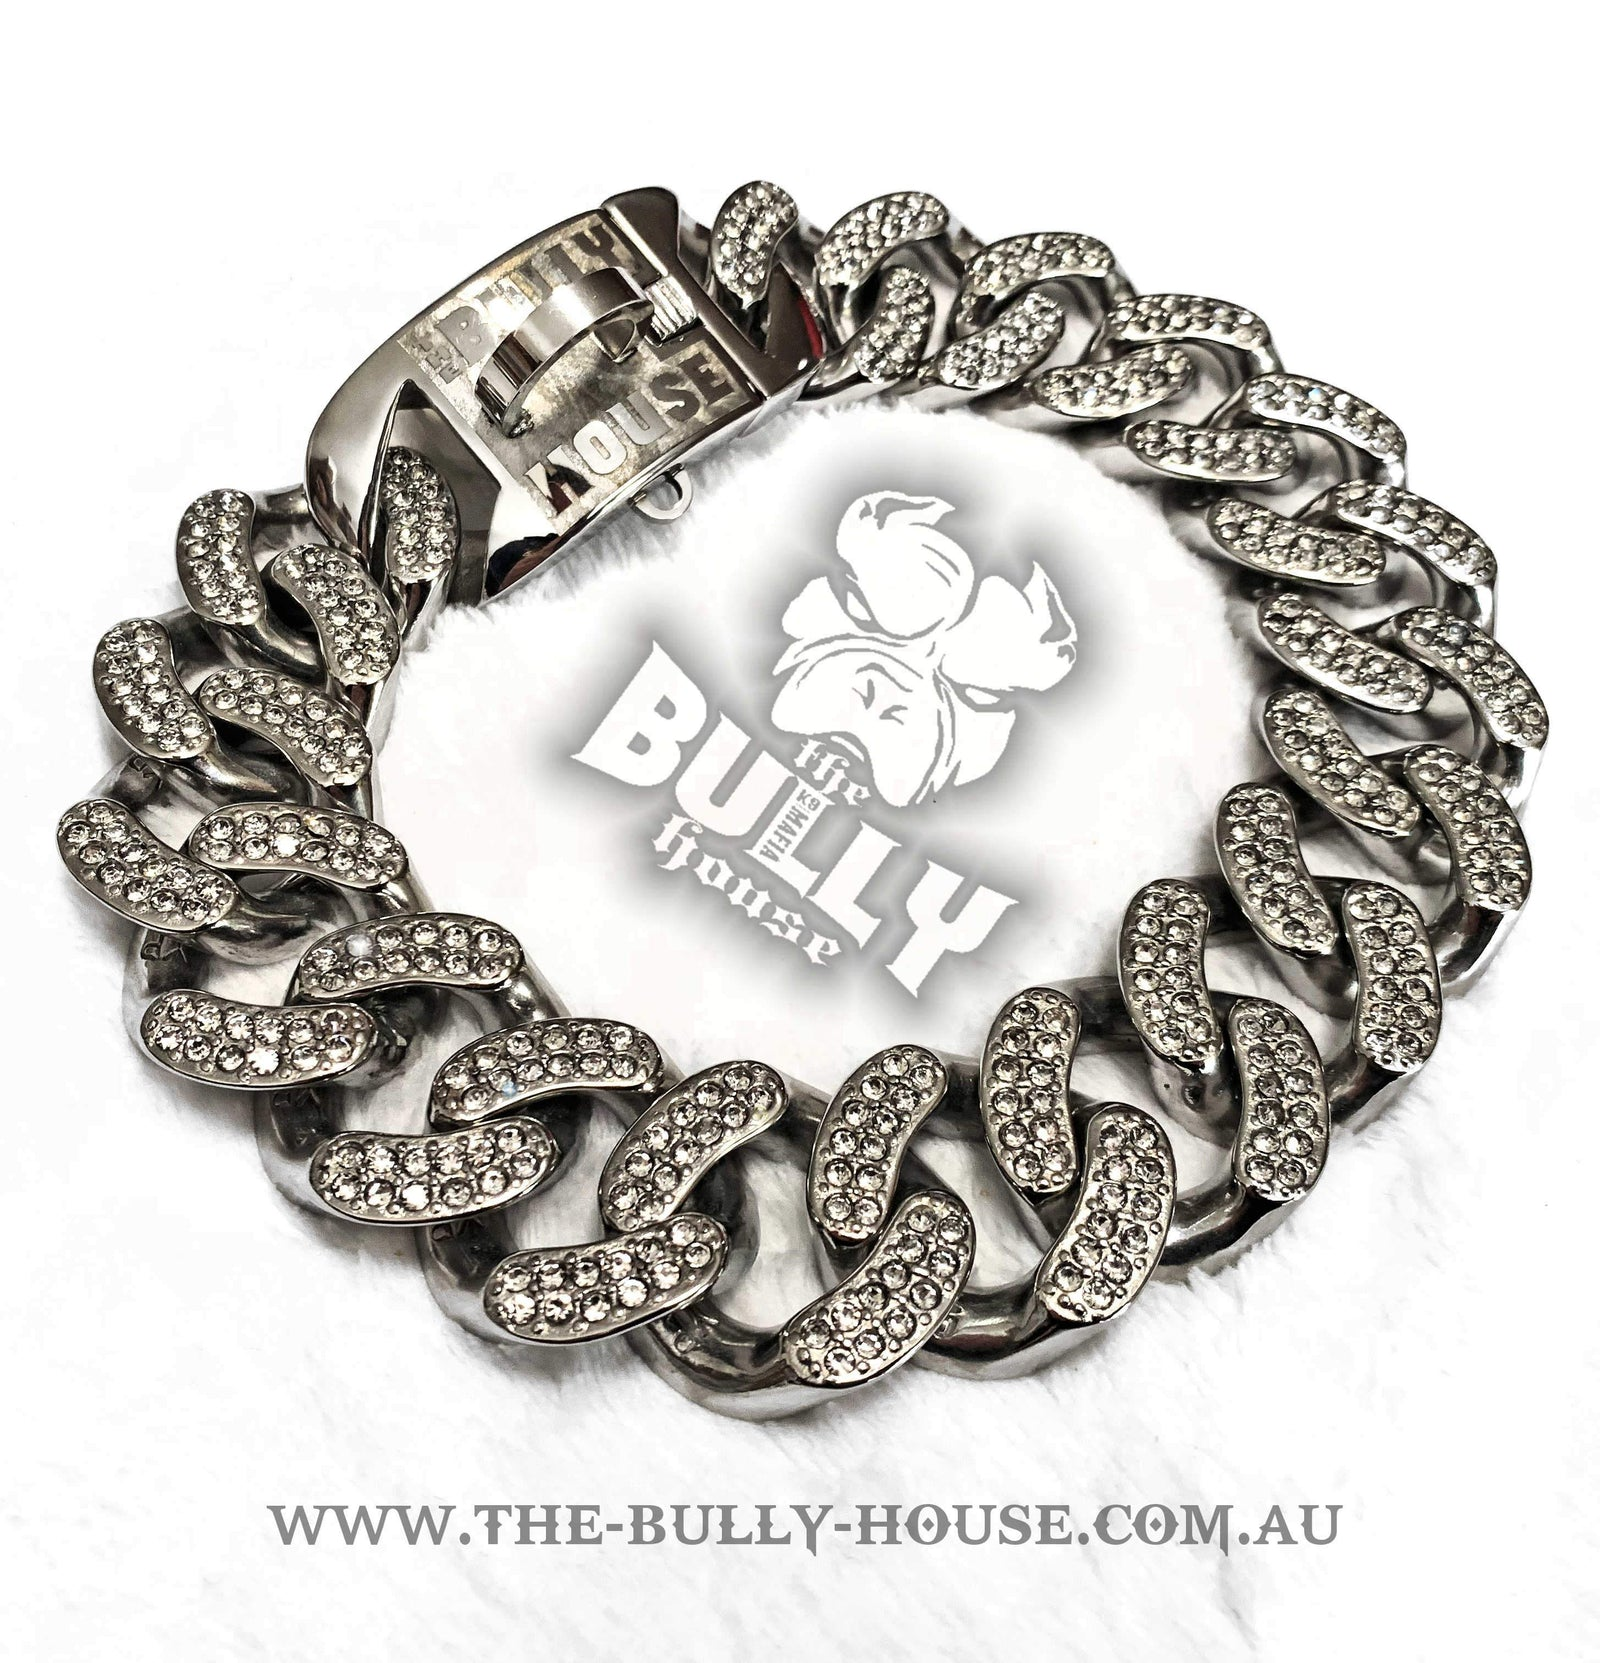 "The Bully House ""ICED OUT KING Diamond Collection"" PLATINUM SILVER - (Free Post in Aust)"